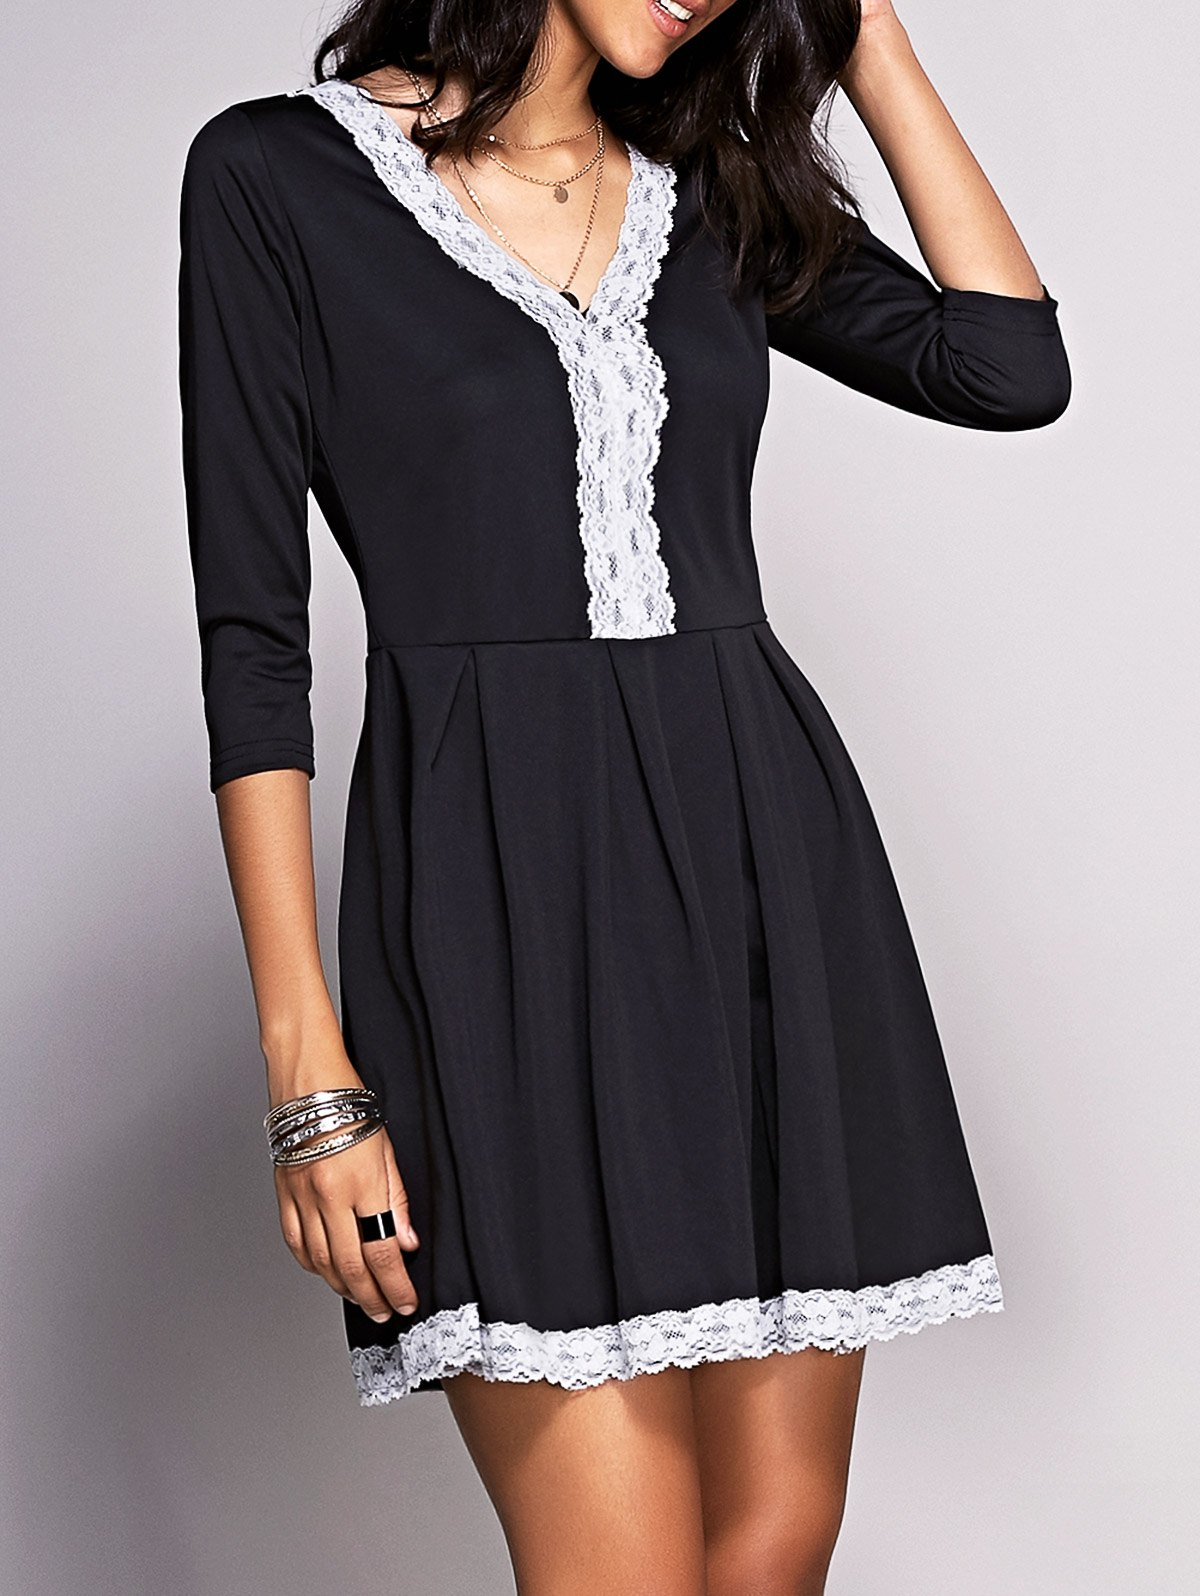 Alluring Plunging Neck 3/4 Sleeve Lace Spliced Women's Dress